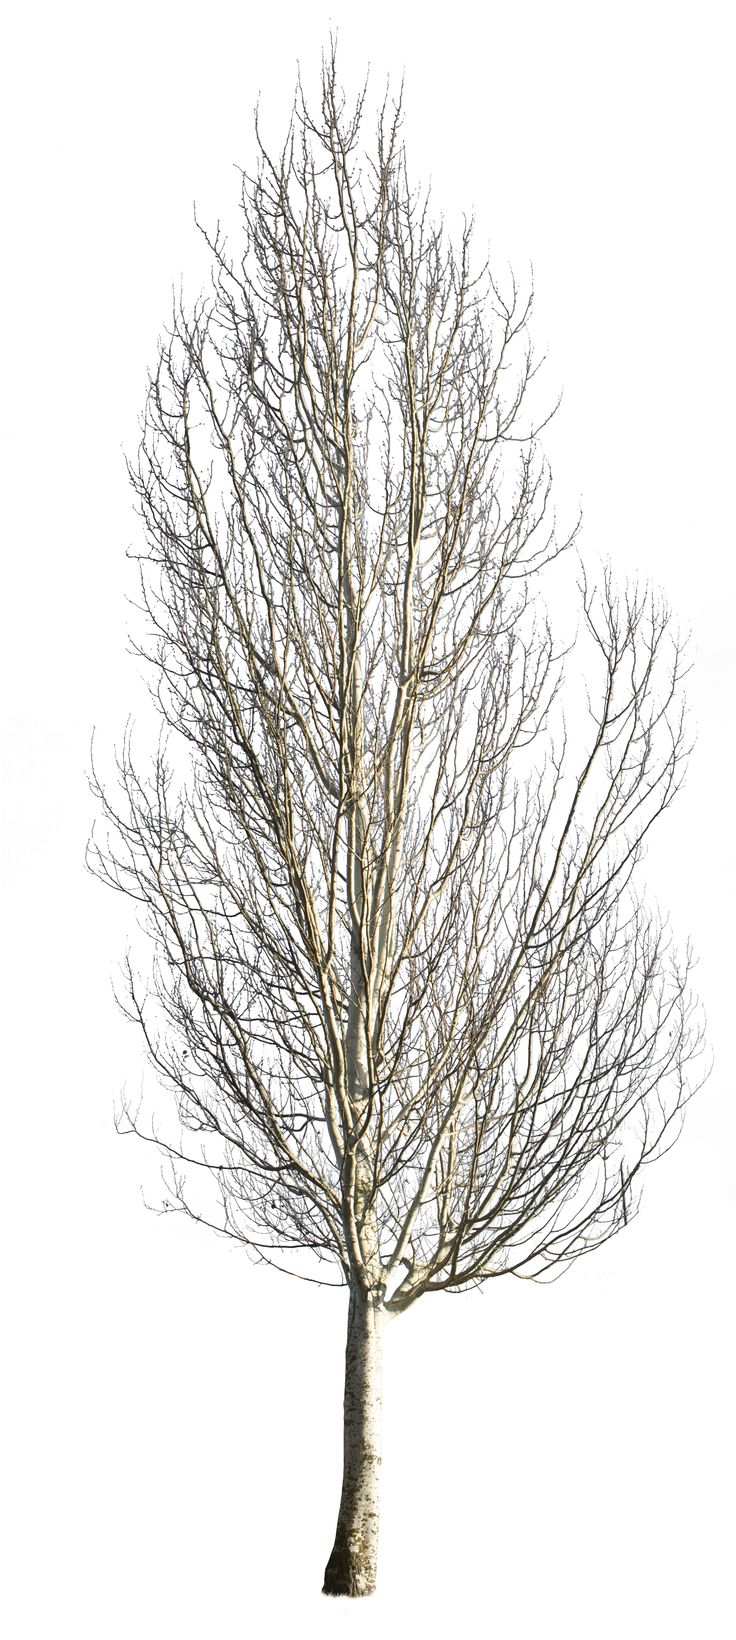 2390 x 5326 Pixels TIFF, transparent background.  38,5 MB file, ready to download.  White poplar tree in the winter time.  Populus alba  En: Abele; Silver poplar, Silverleaf poplar, White poplar; De:Silver-pappel, Weiß-Pappel; Fr: Peuplier argenté; It:Pioppo d'argento; Pt:Choupo branco.   Native to Morocco, Iberian Peninsula, central Europe to central Asia.Grows in moist sites, often by watersides, in regions with hot summers and cold to mild winter